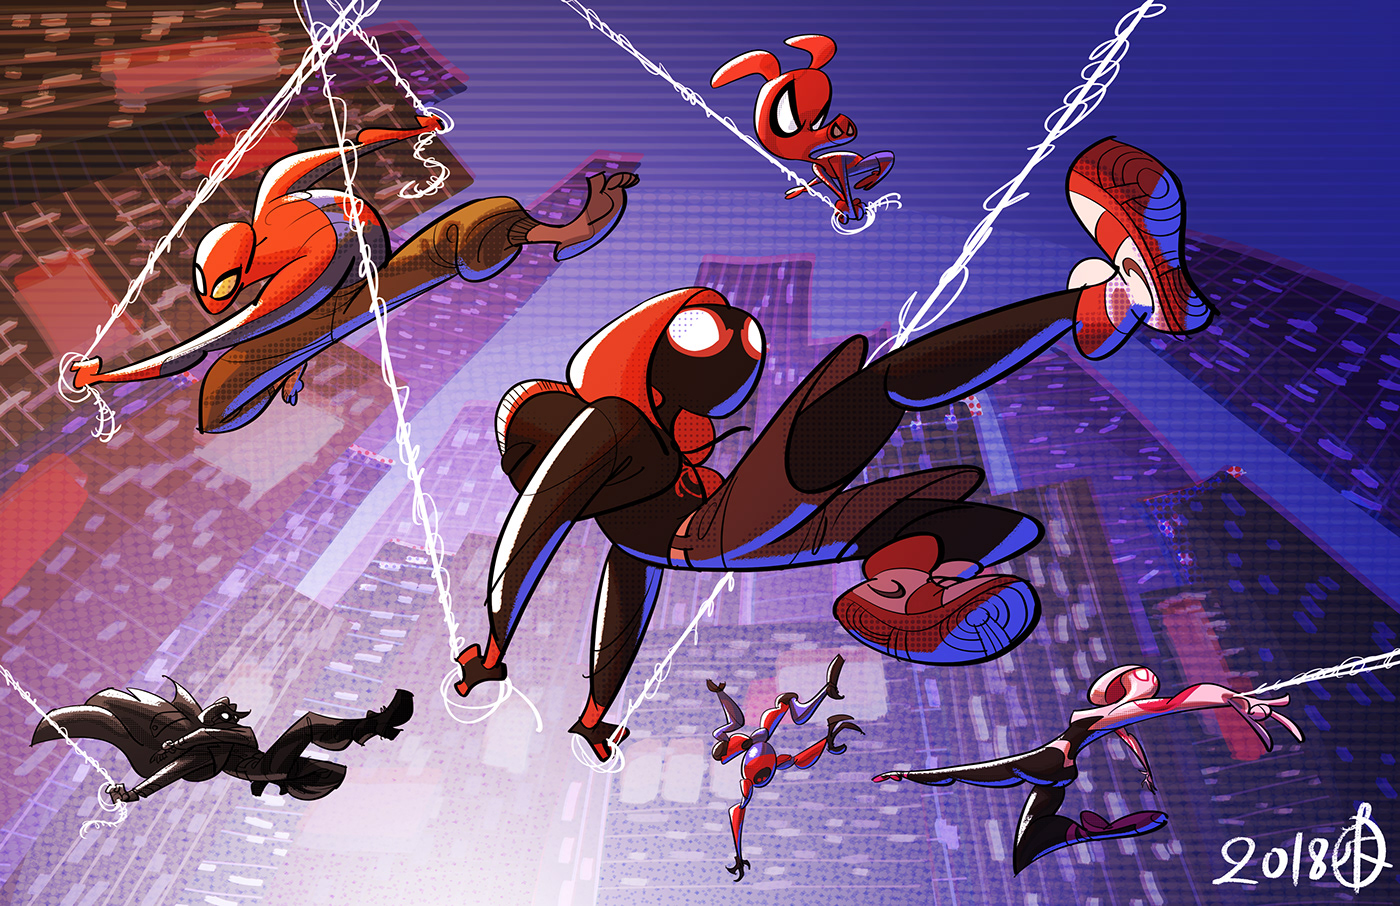 Into the Spider-verse av Huy Hoang Ha. Från behance.net/splendidriver